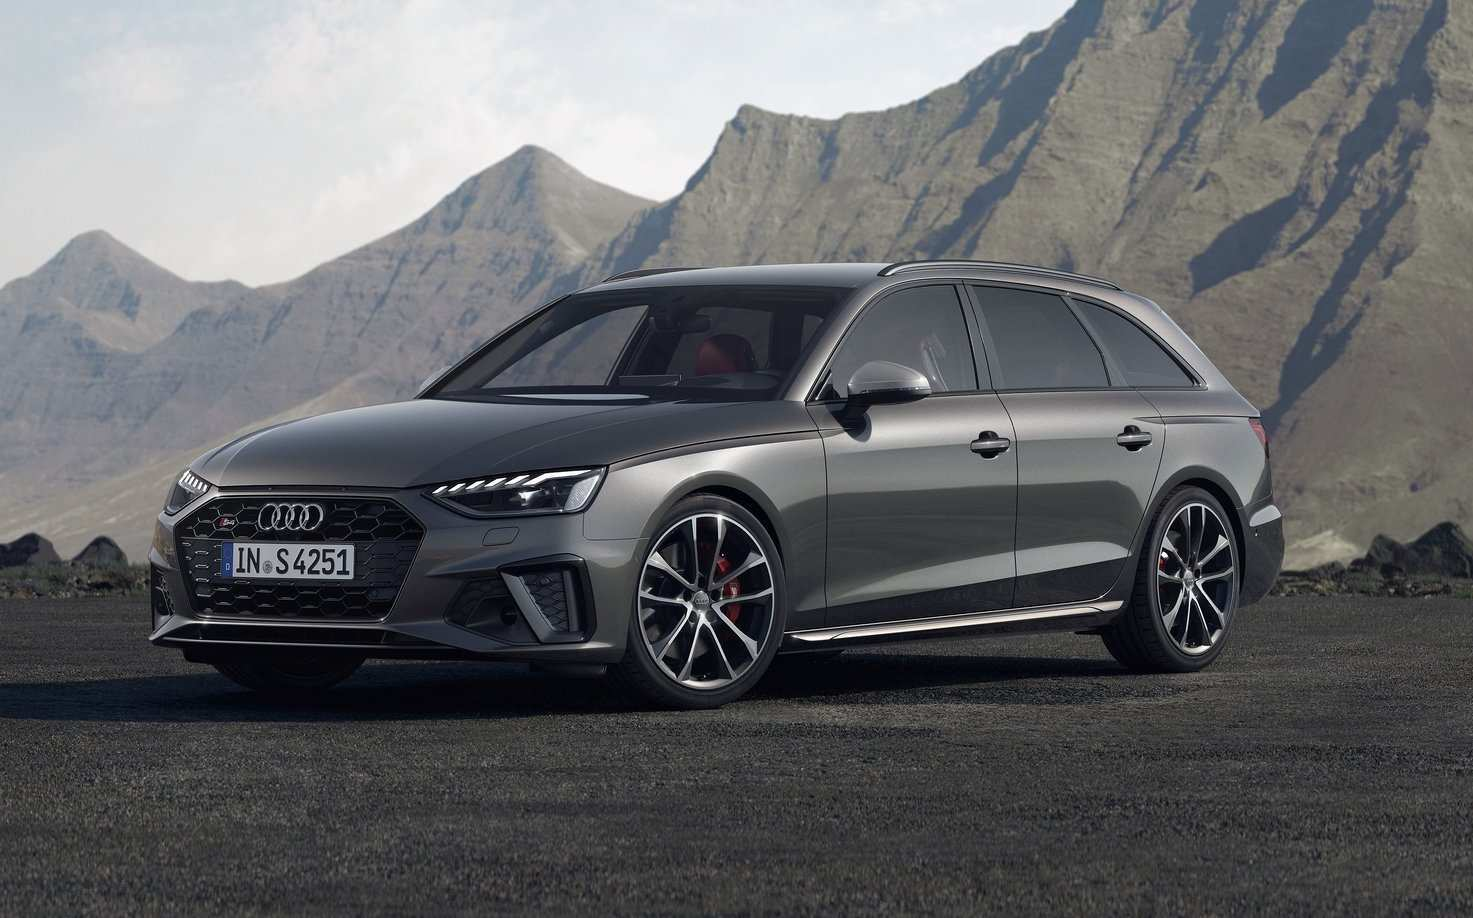 78 The Best Audi Wagon 2020 Picture